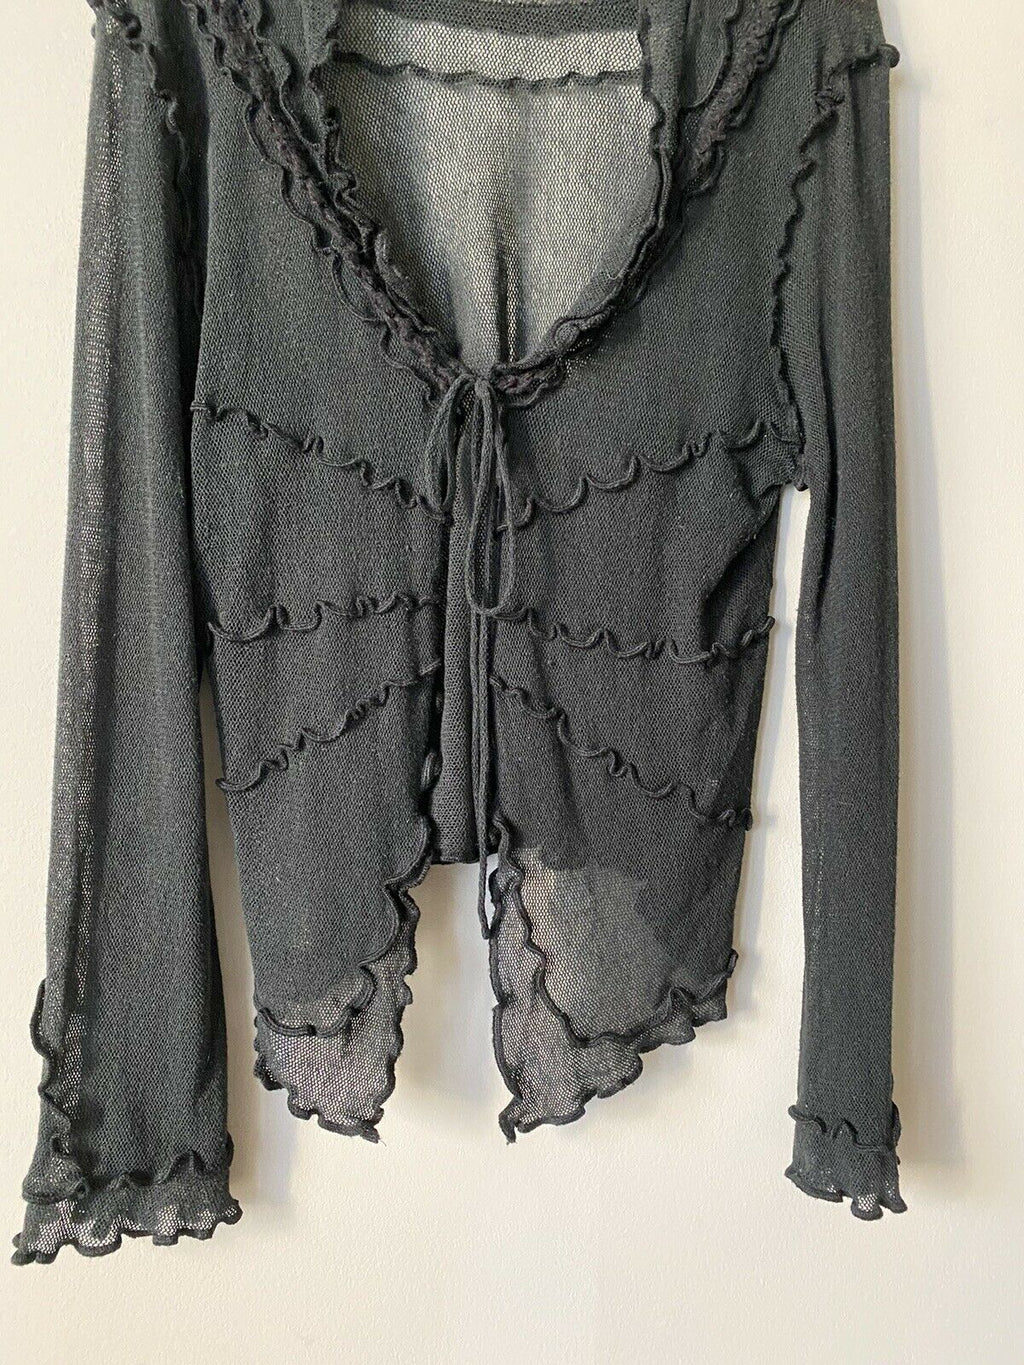 Sandwich Womens Size XL Black Cardigan Sweater Long Sleeved Tie Front Mesh Shirt